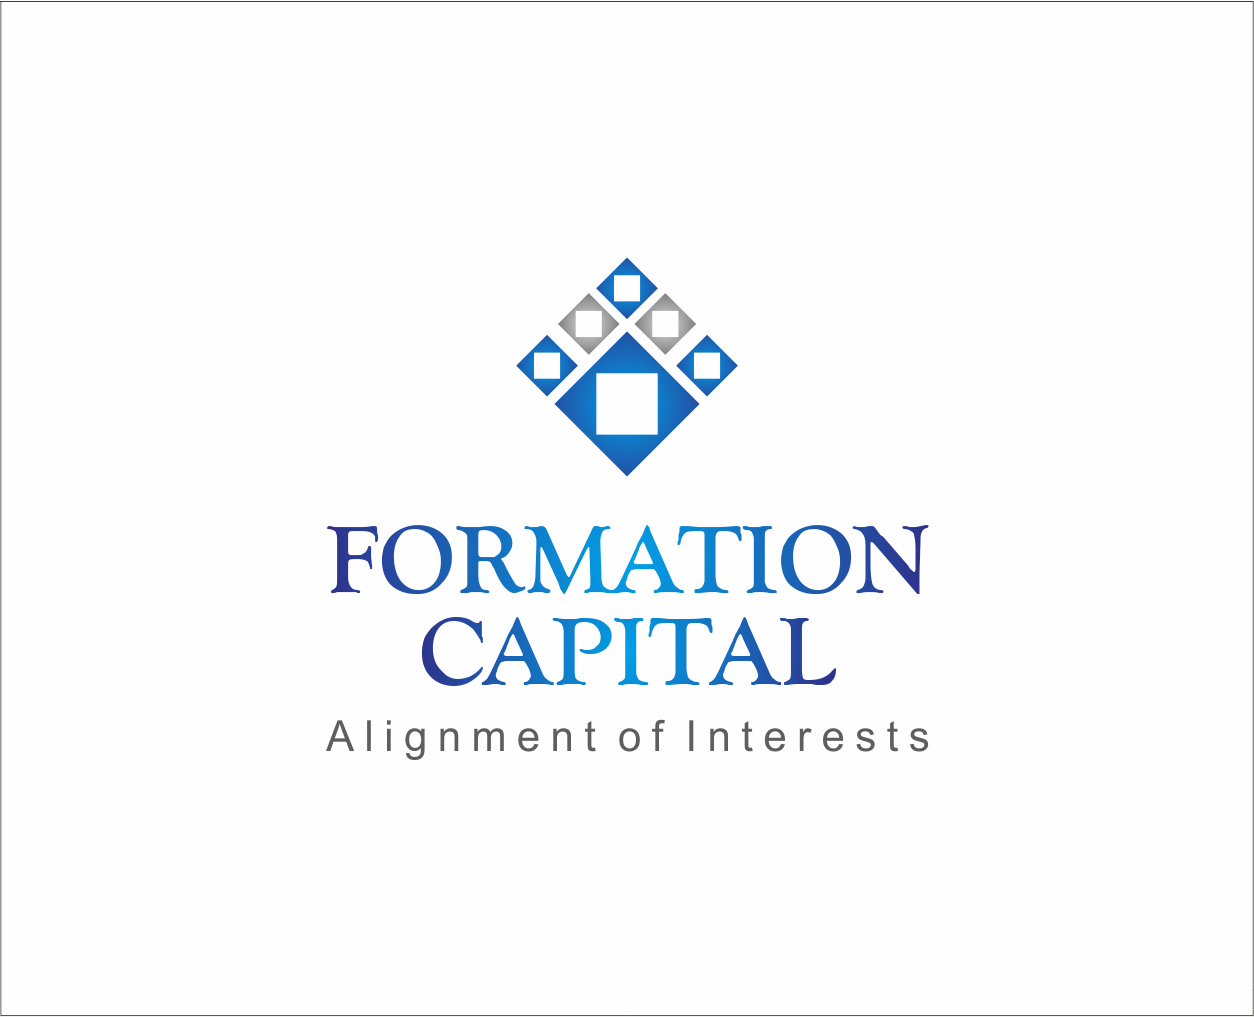 Logo Design by Armada Jamaluddin - Entry No. 204 in the Logo Design Contest Inspiring Logo Design for Formation Capital.